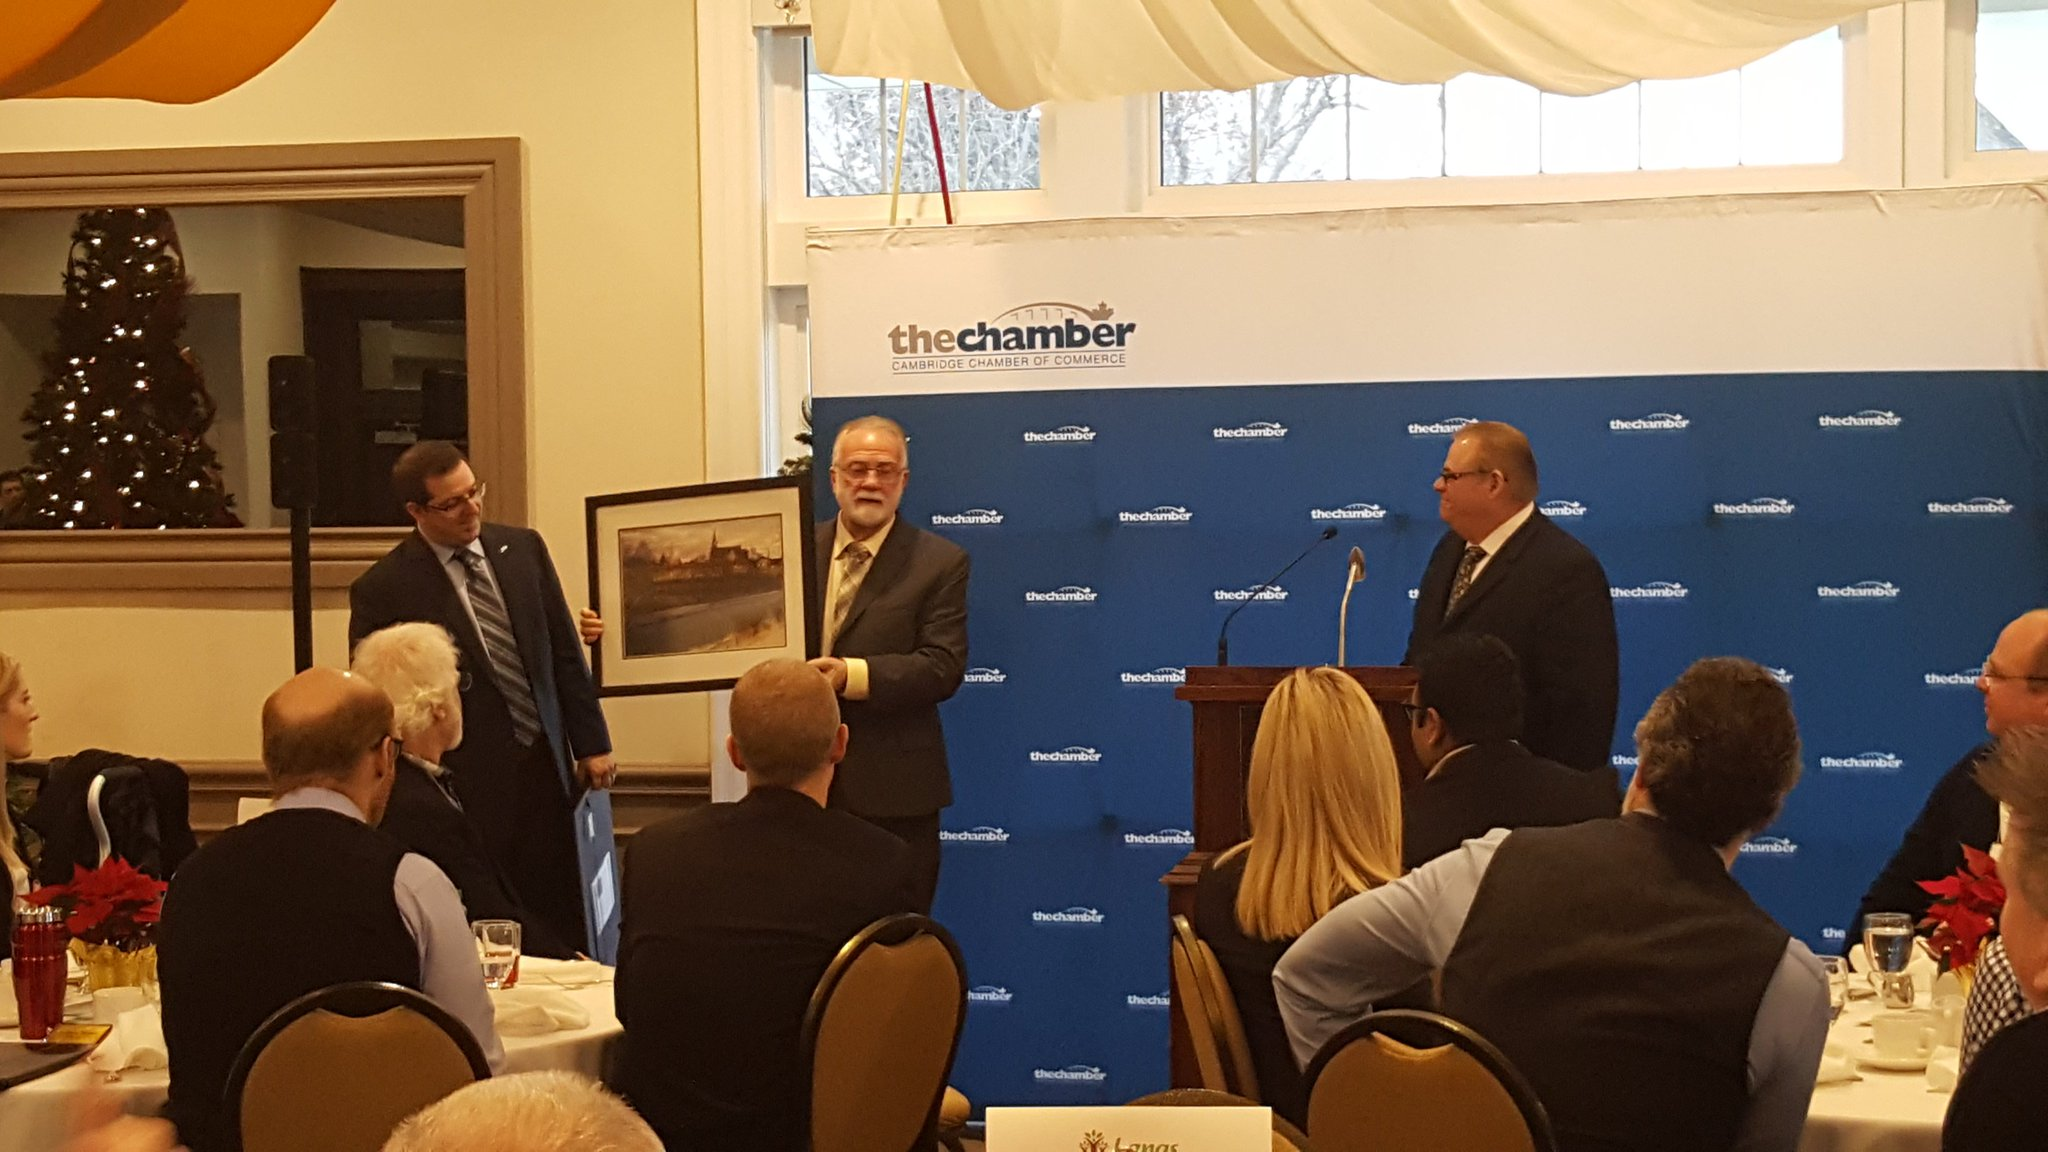 Presentation of Alex's prints to Cambridge Mayor Doug Craig & Guelph Mayor Cam Guthrie as Thank You gifts during a Cambridge Chamber of Commerce December 2016 morning event.